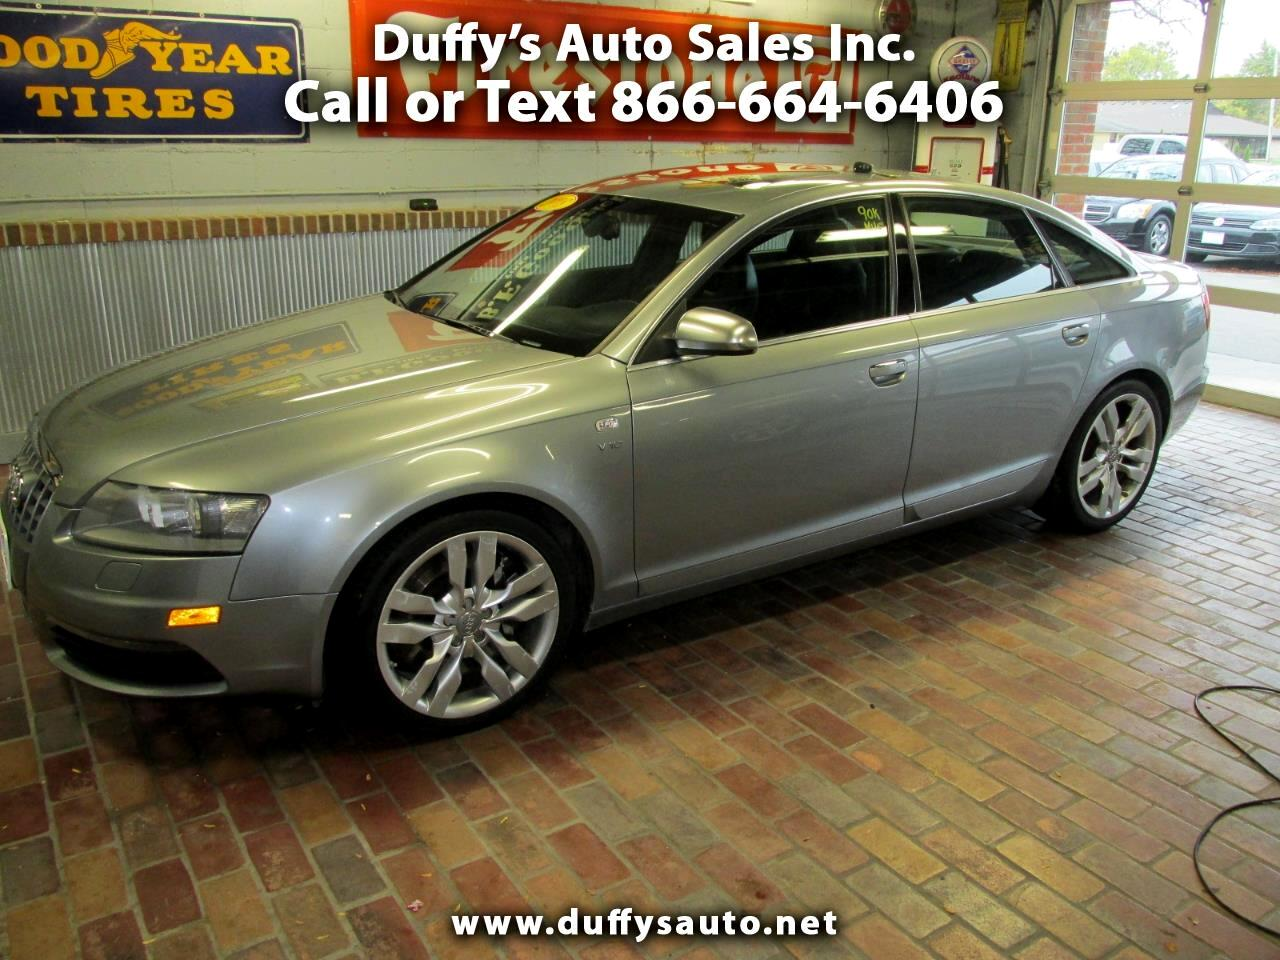 Audi S6 4dr Sdn 2008